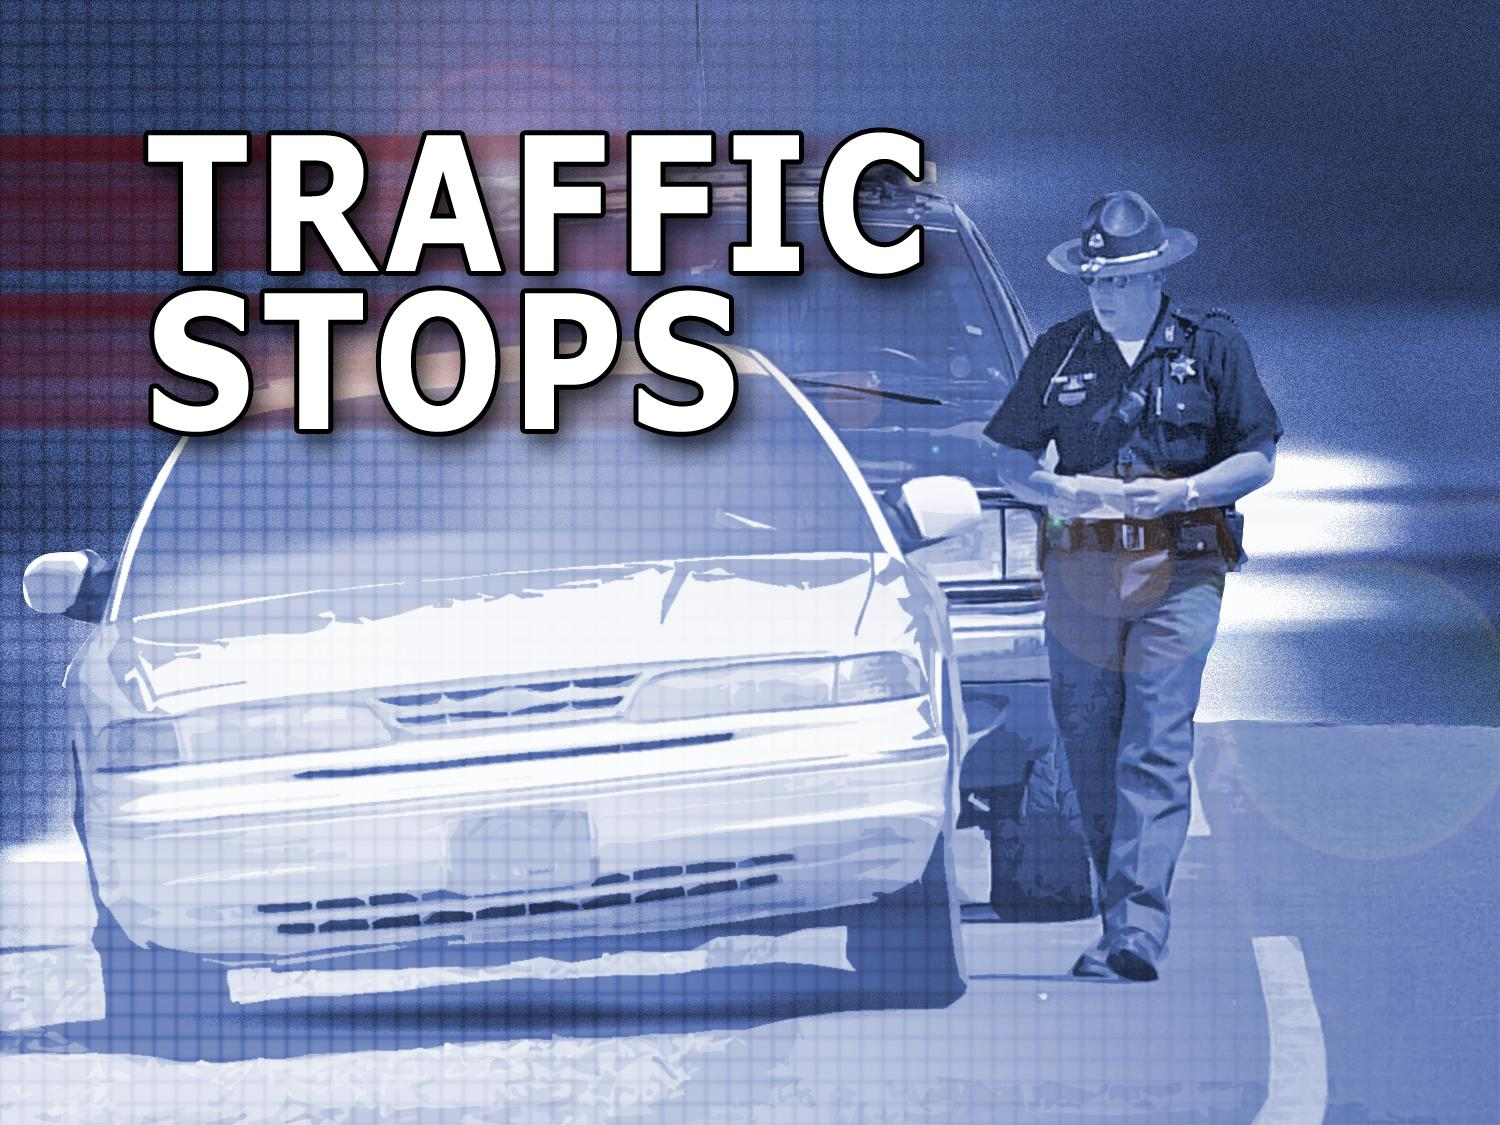 traffic stops - traffic checkpoints_164657